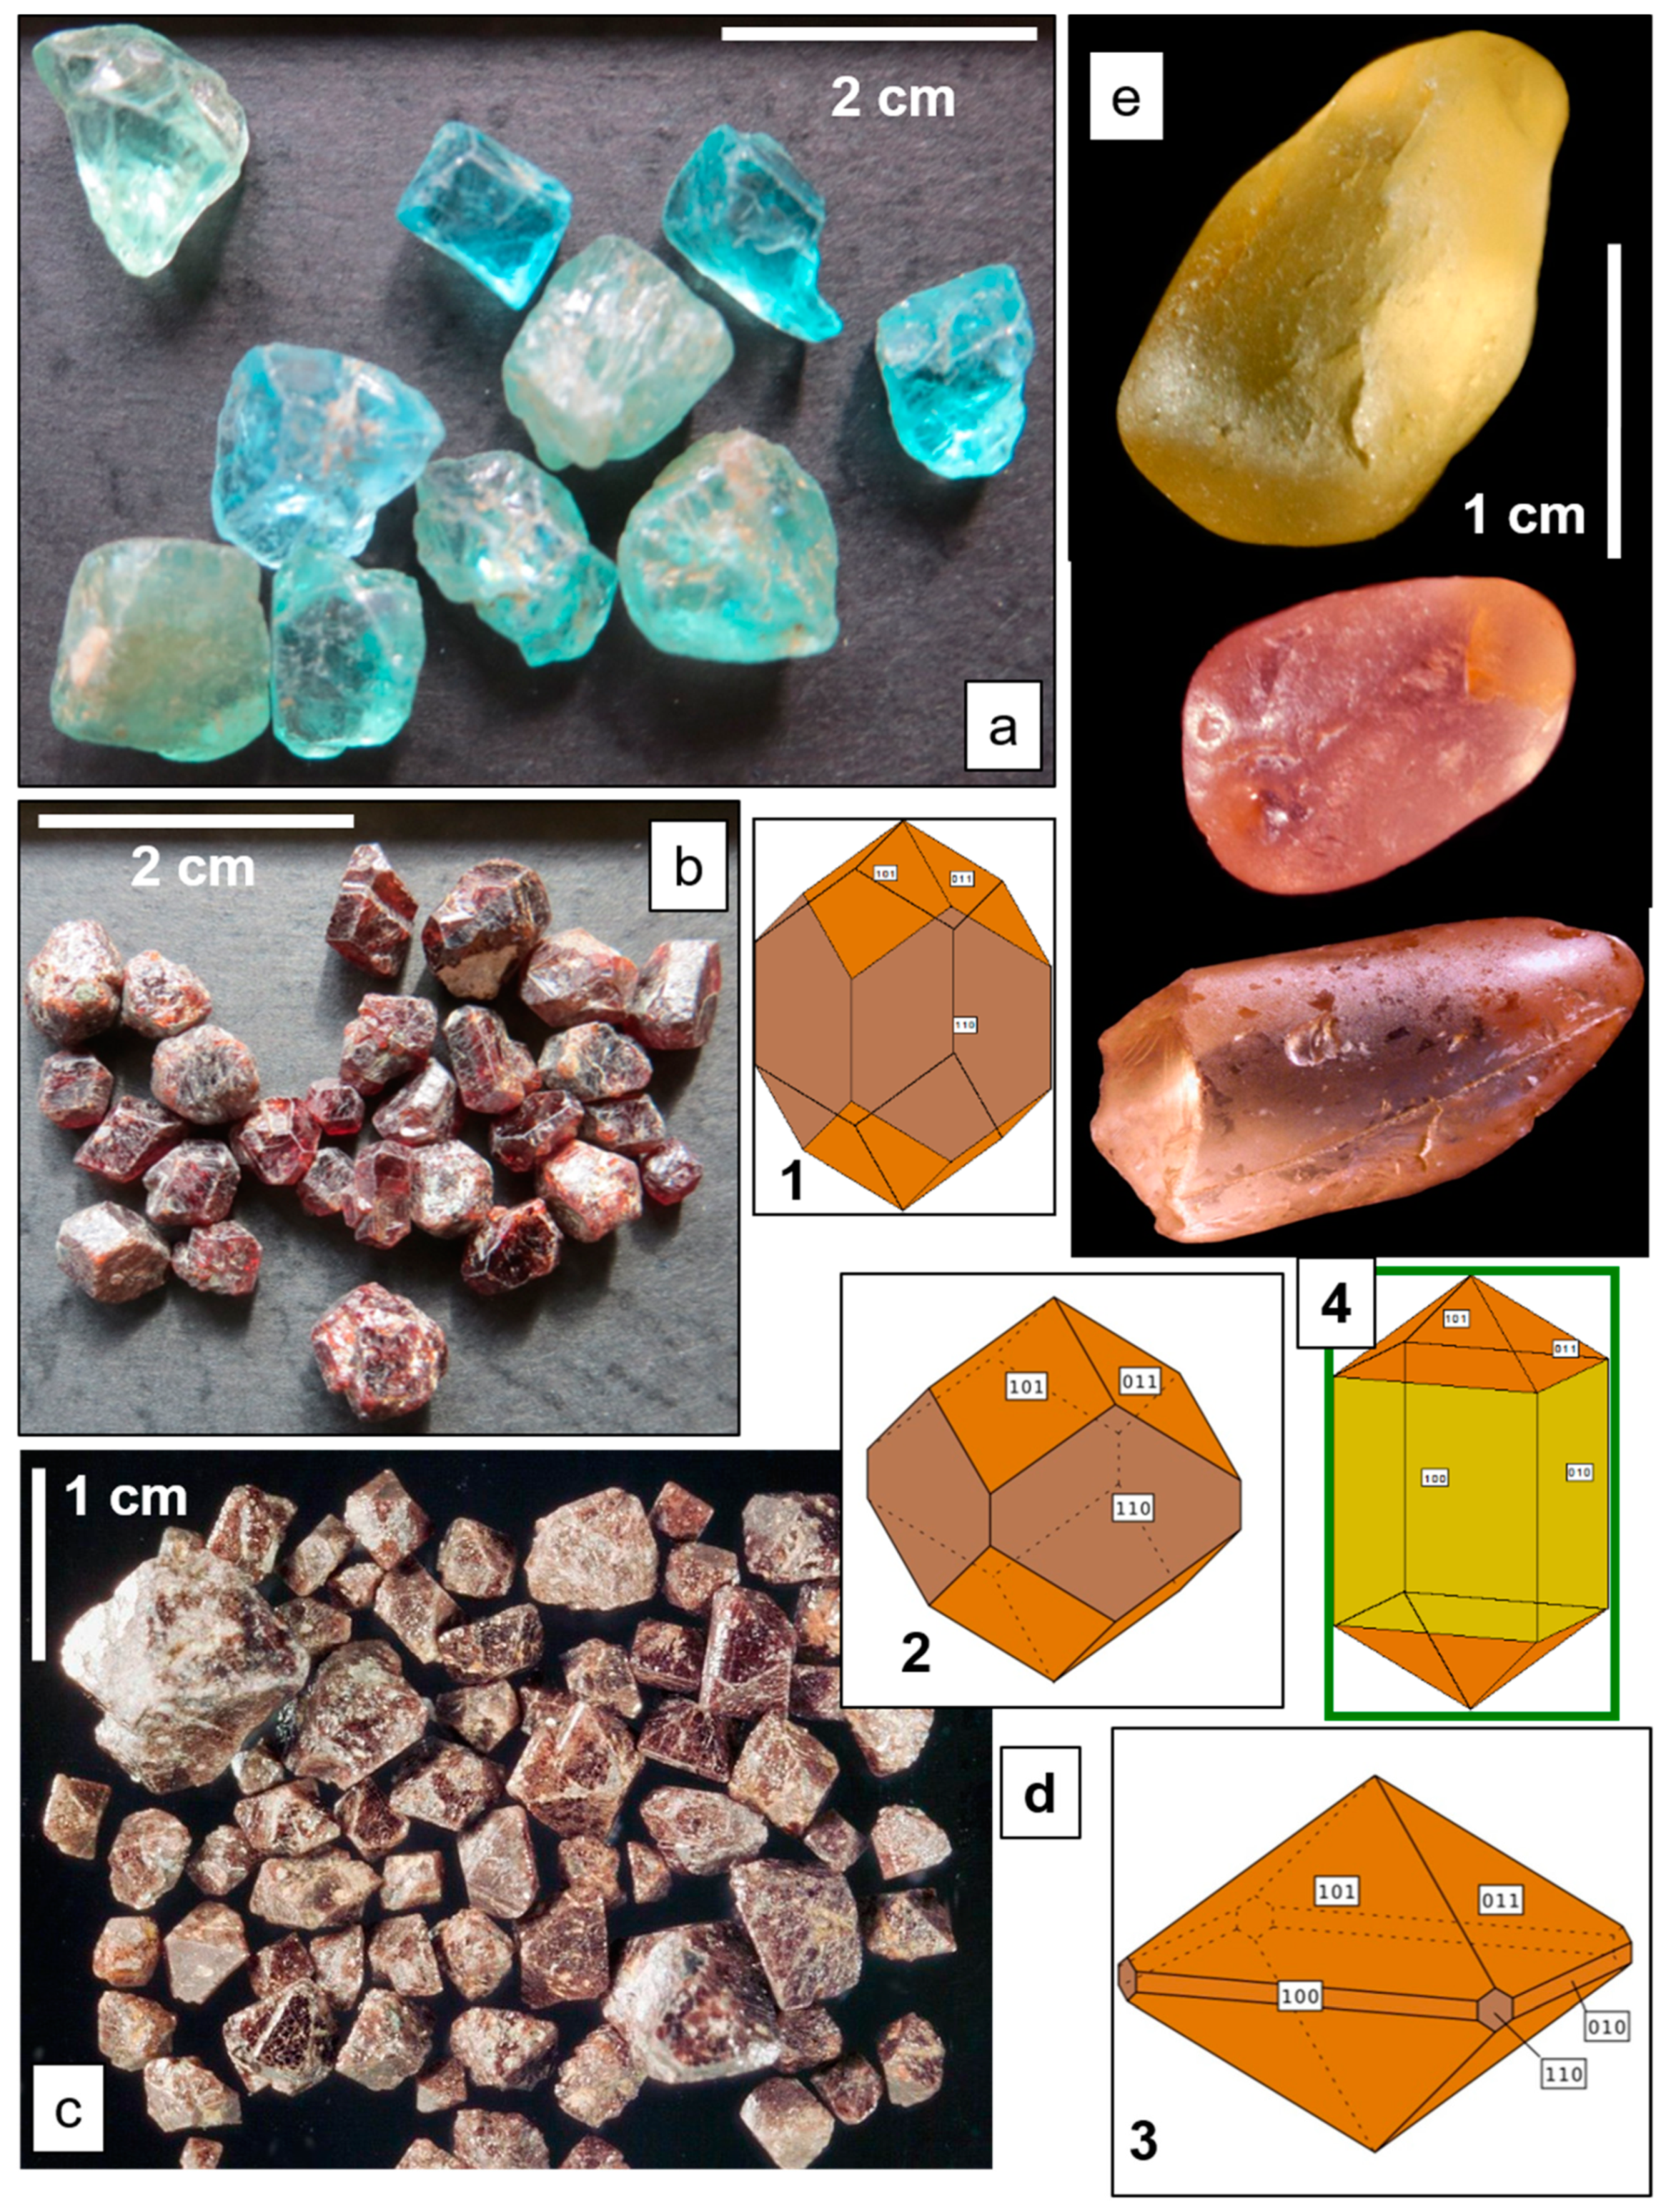 Minerals | Free Full-Text | Gems and Placers—A Genetic Relationship